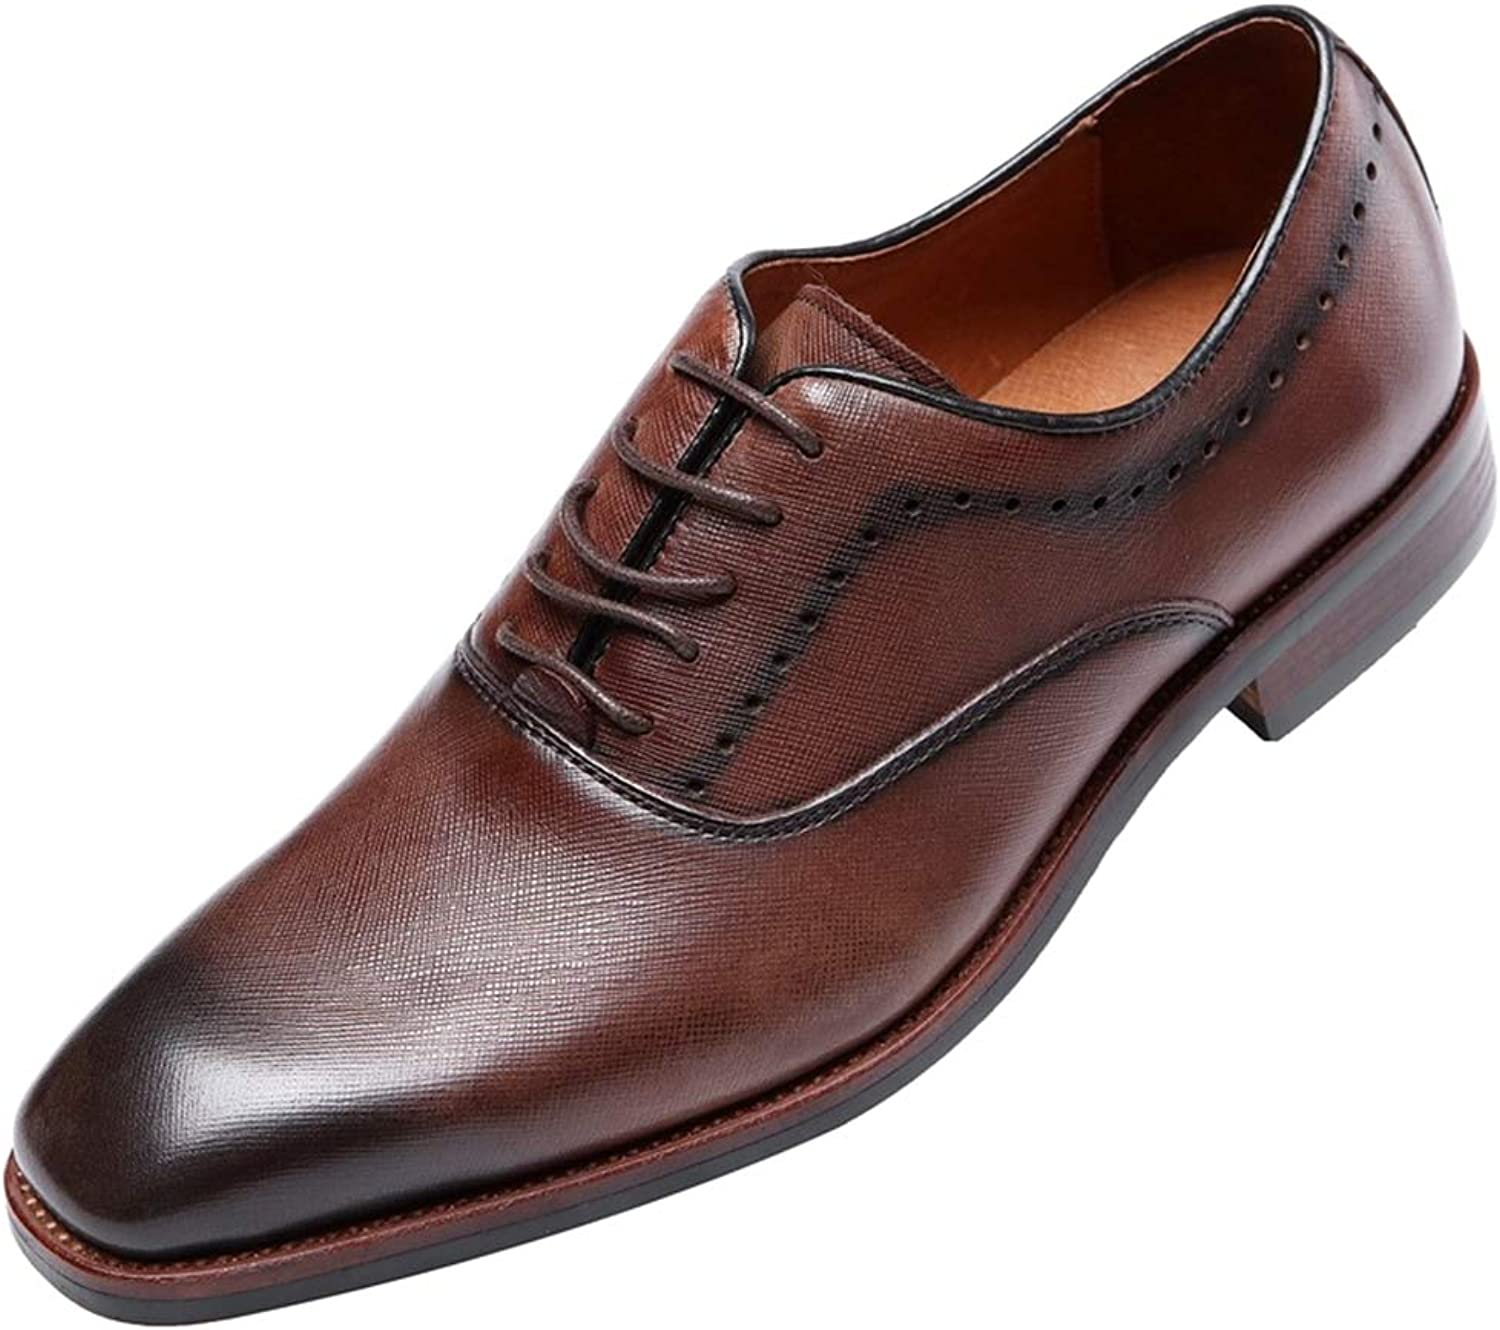 3085d18054c06 Mens Leather shoes Lace-Up Business Oxford Pointed Toe Toe Toe Prom ...